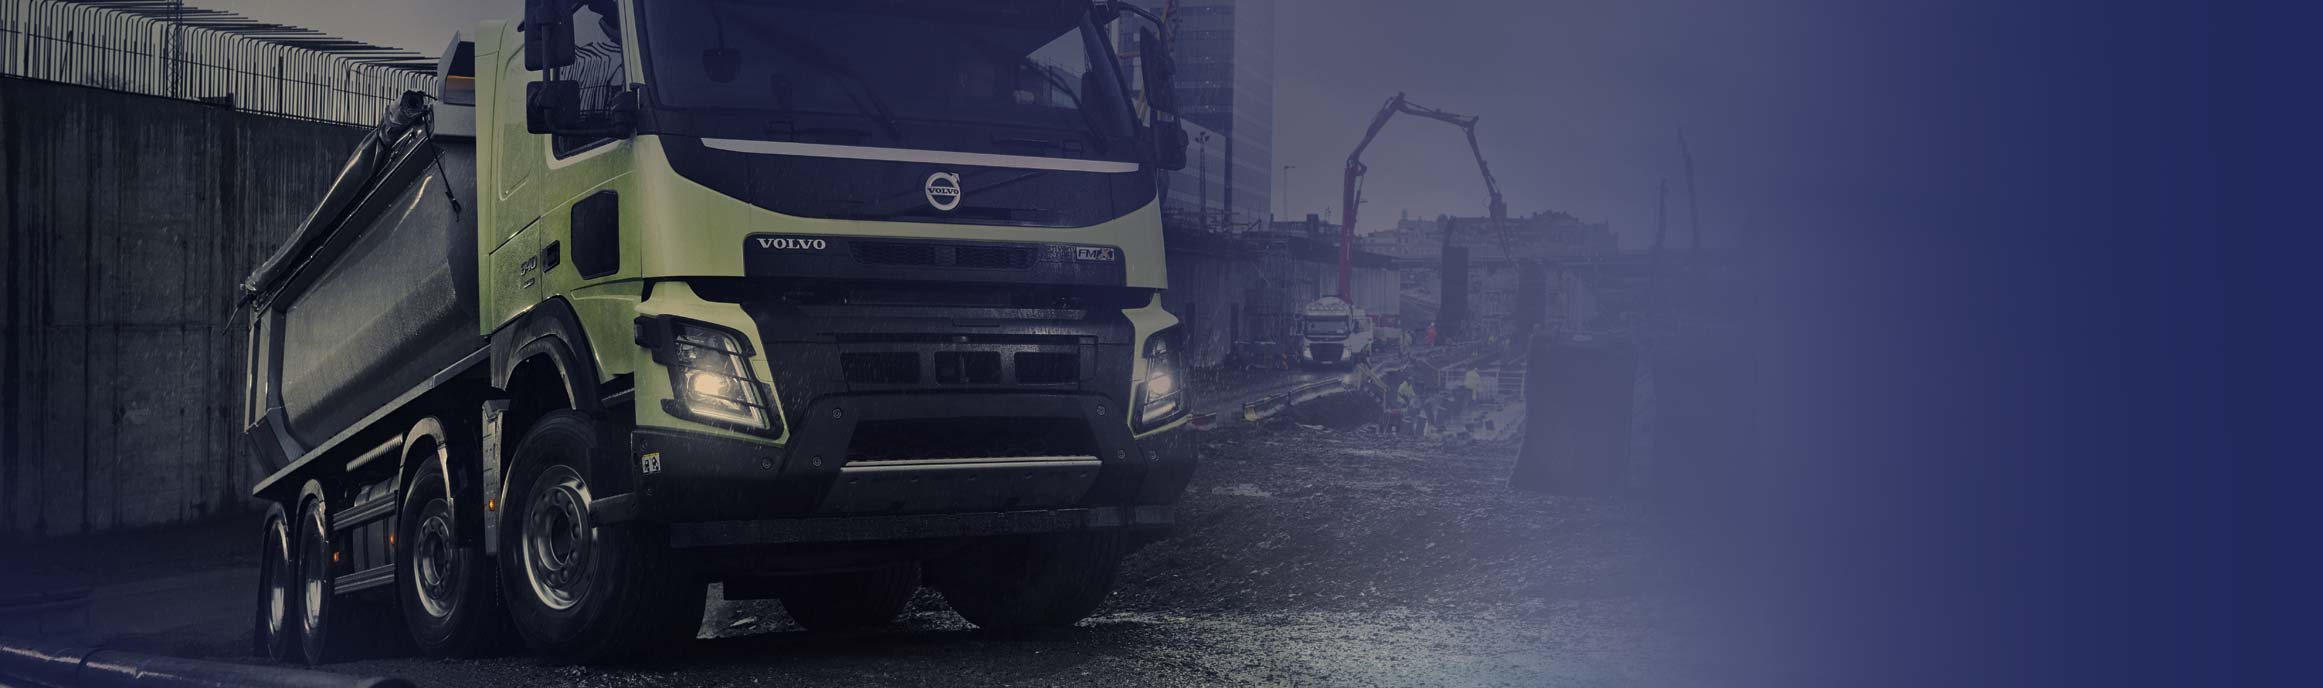 Volvo FMX Trucks bij BAS Truck Center